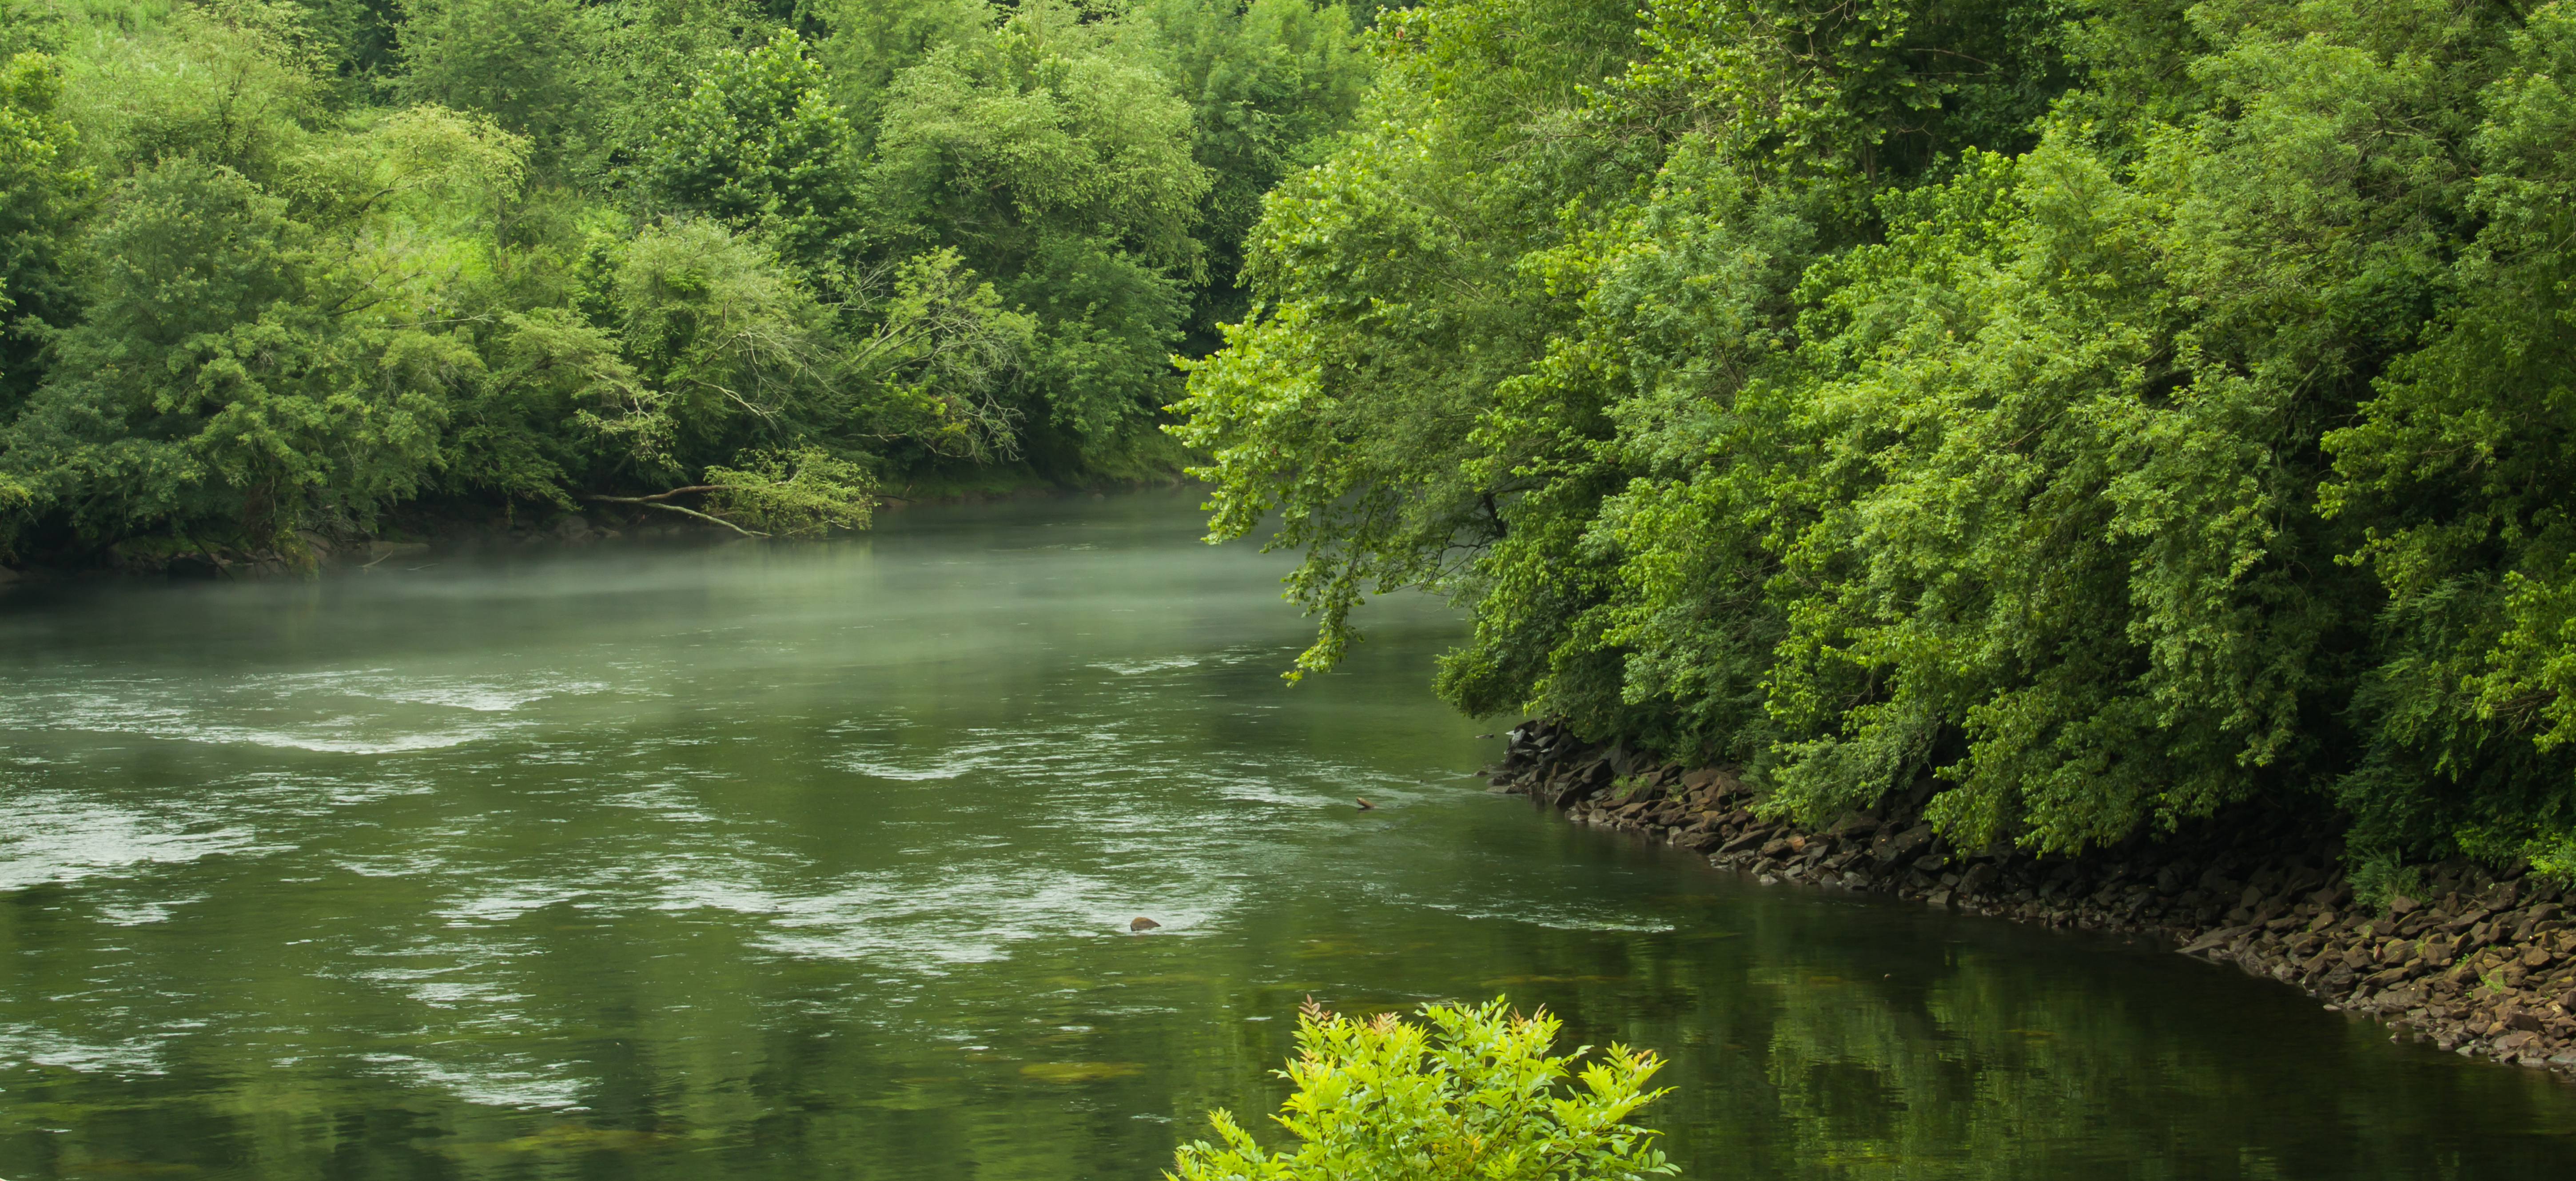 chattahoochee river with trees